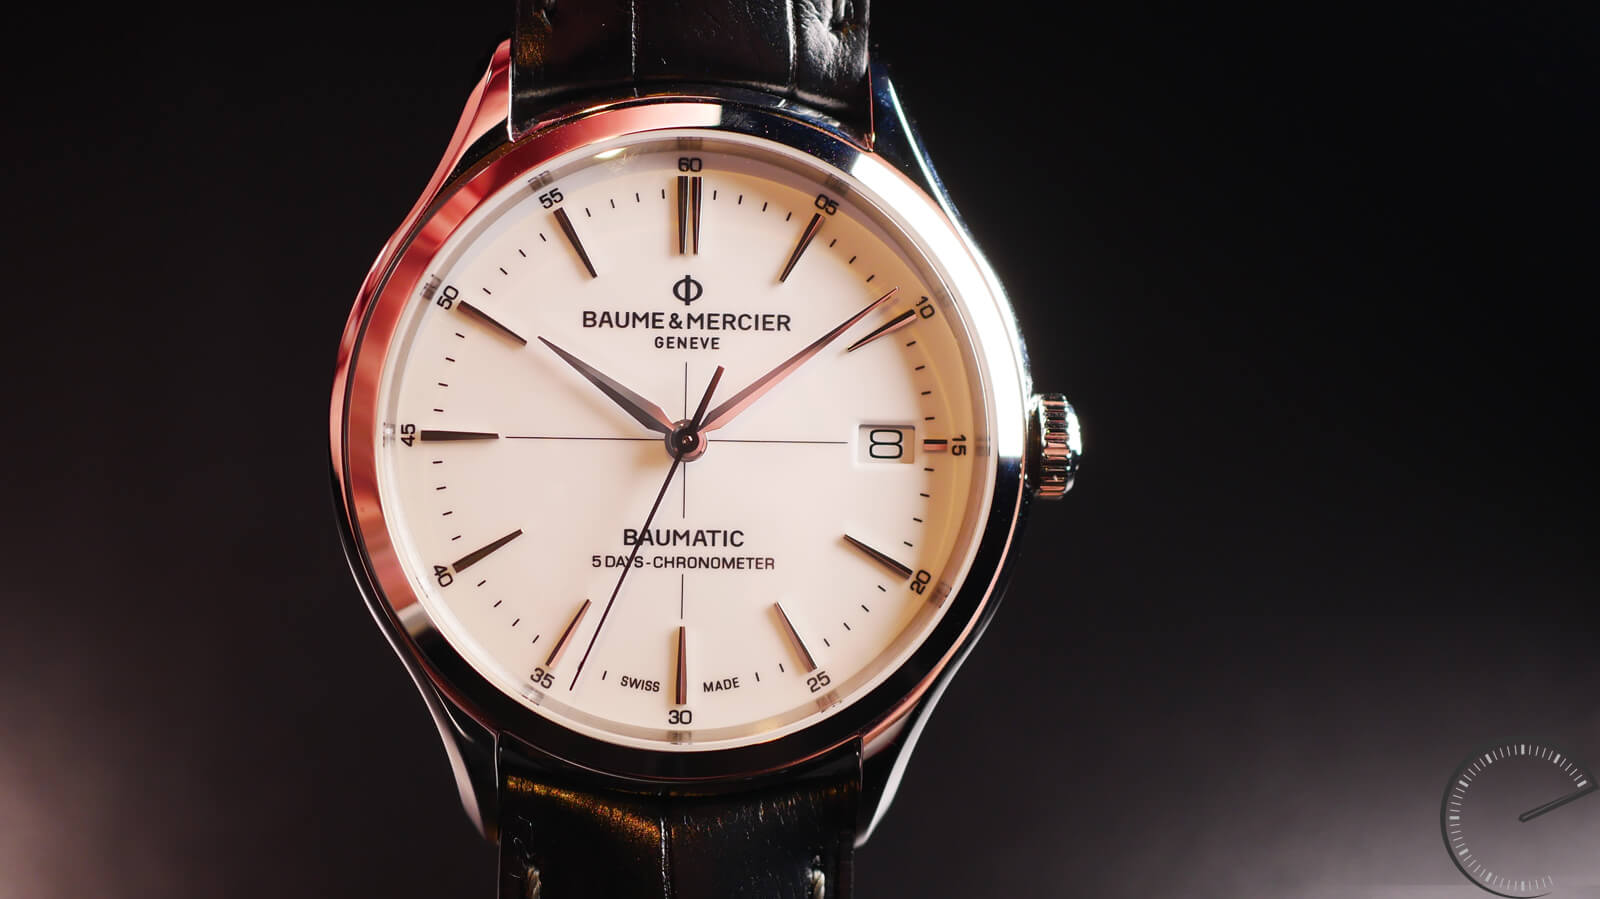 Baume & Mercier Clifton Baumatic MOA 10436 - COSC certified chronometer with silicon escapement